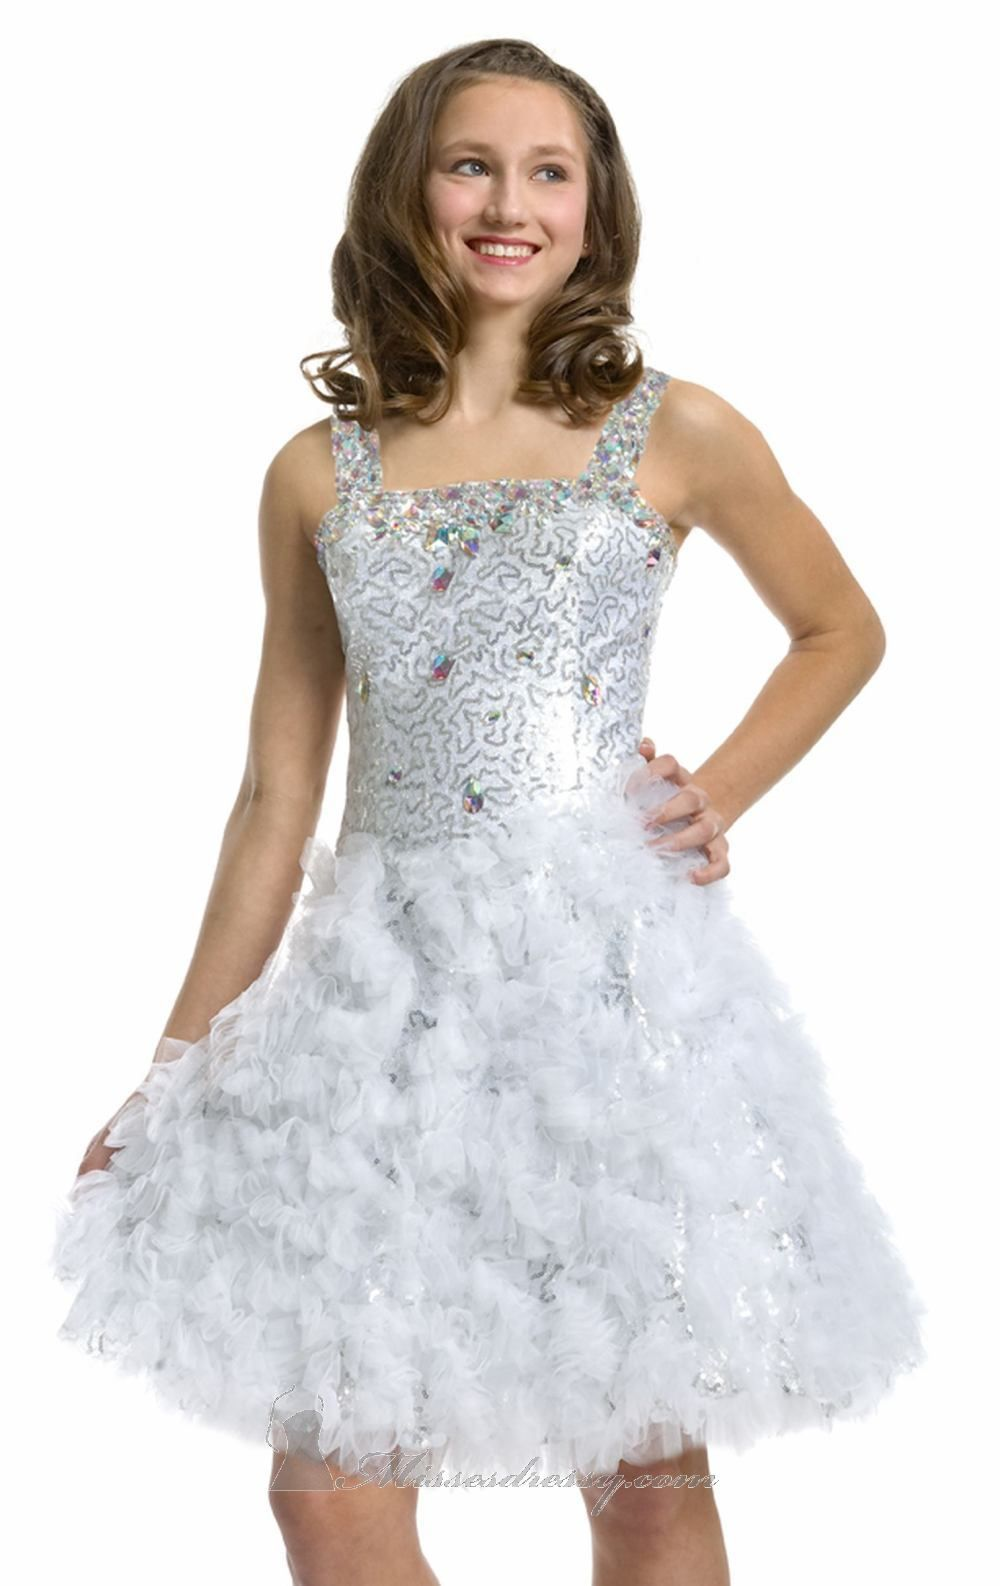 Party Time 1495 Dress - MissesDressy.com | Pageants | Pinterest